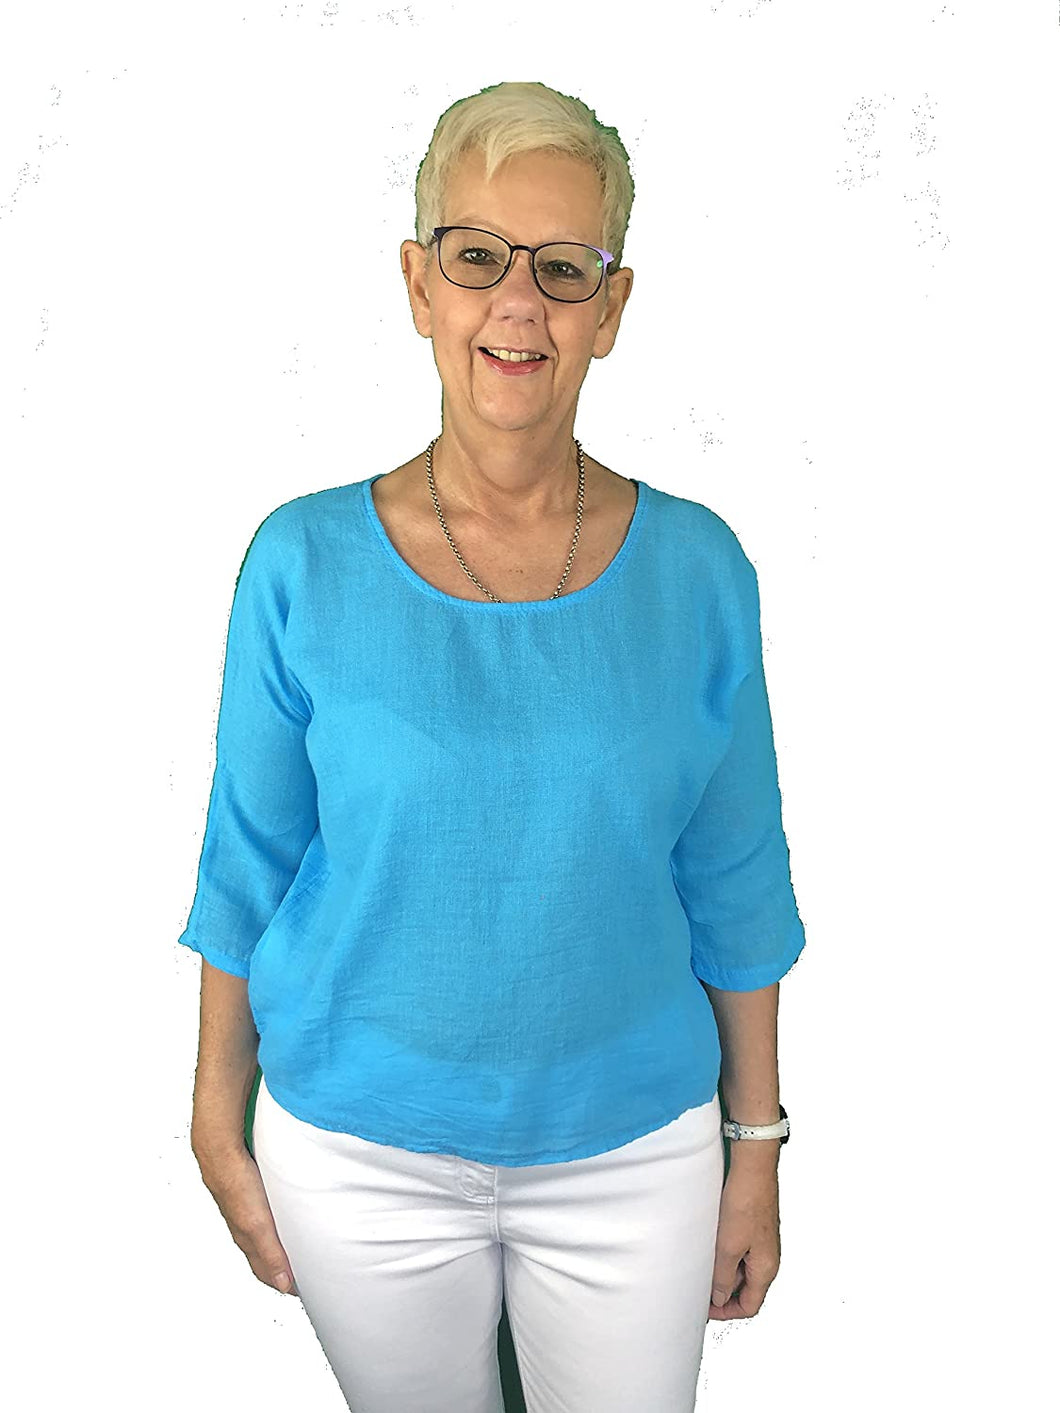 Pamper Yourself Now ltd Plain Turquoise Short T Shirt 70% Linen + 30% Cotton. One Size Recommended Fits Size 10-16 Made in Italy (AA63)